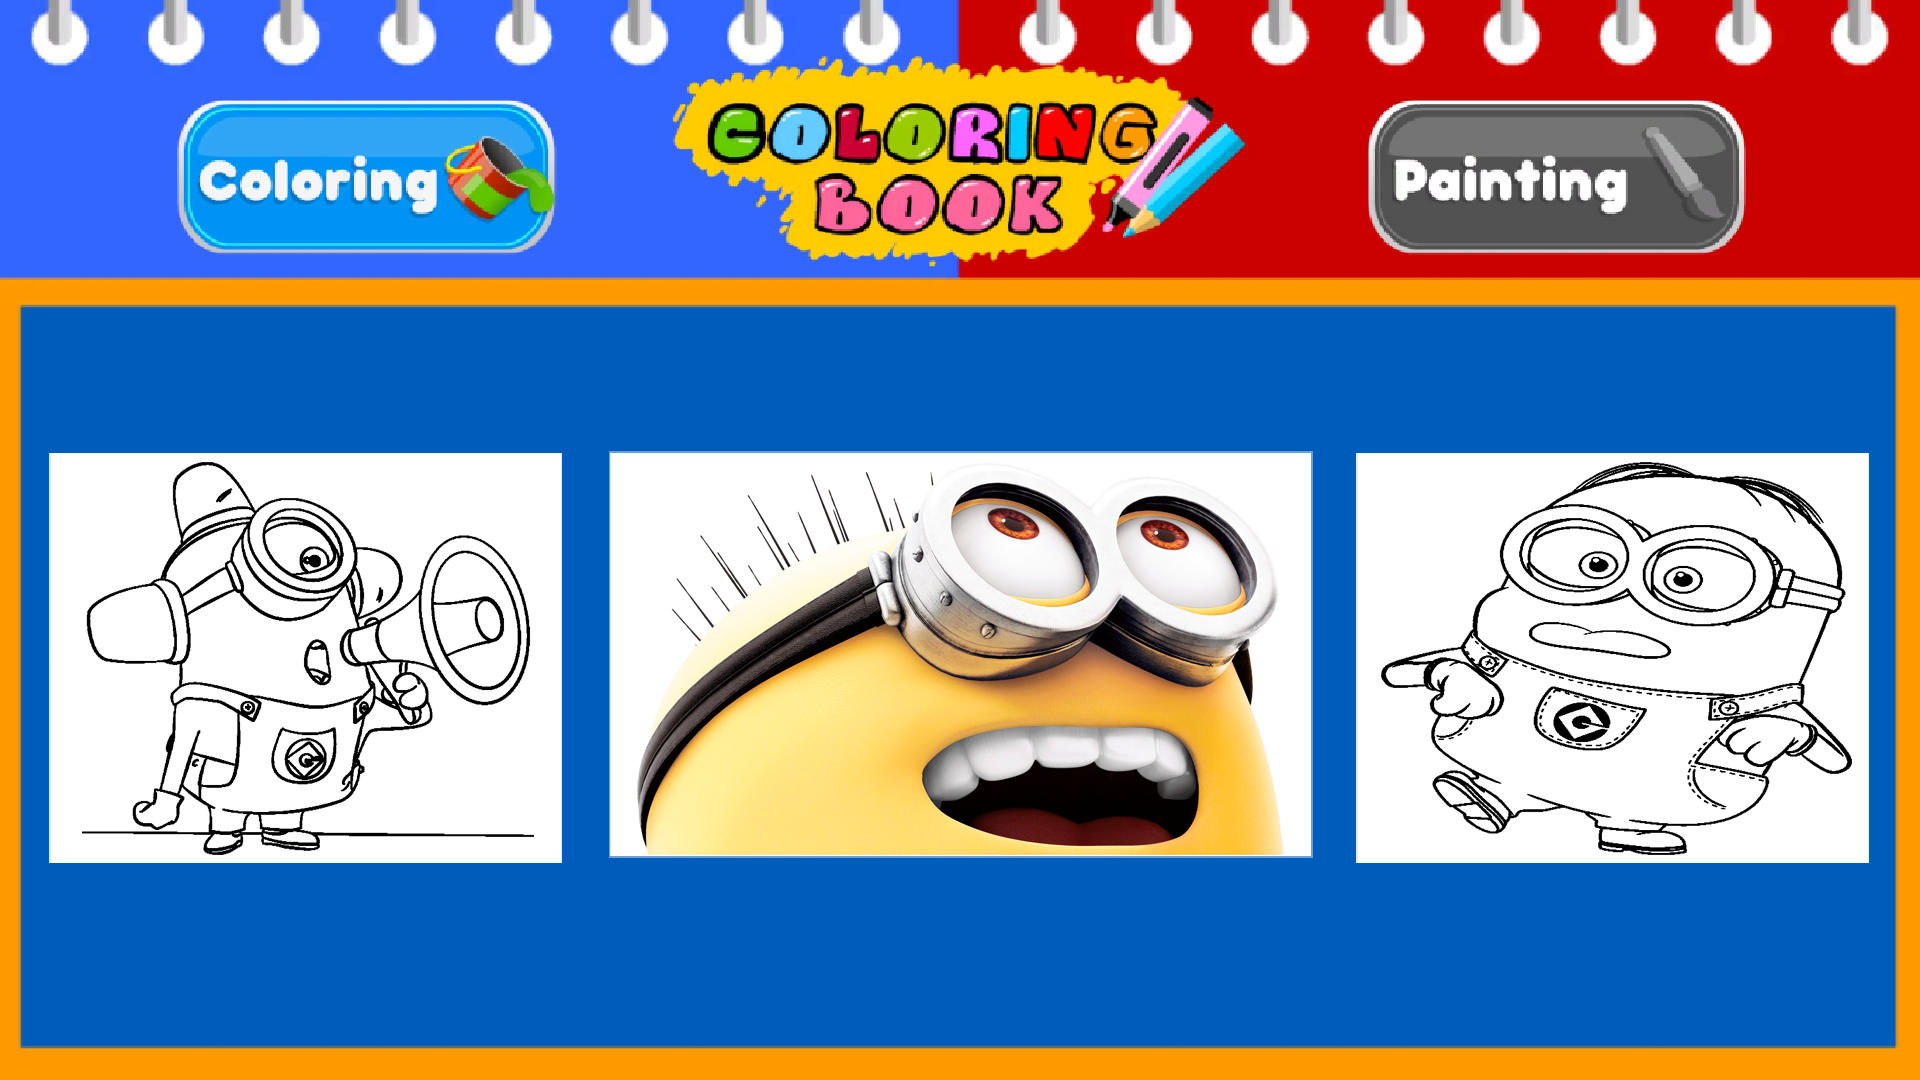 Get Minion Coloring Book And Painting - Microsoft Store